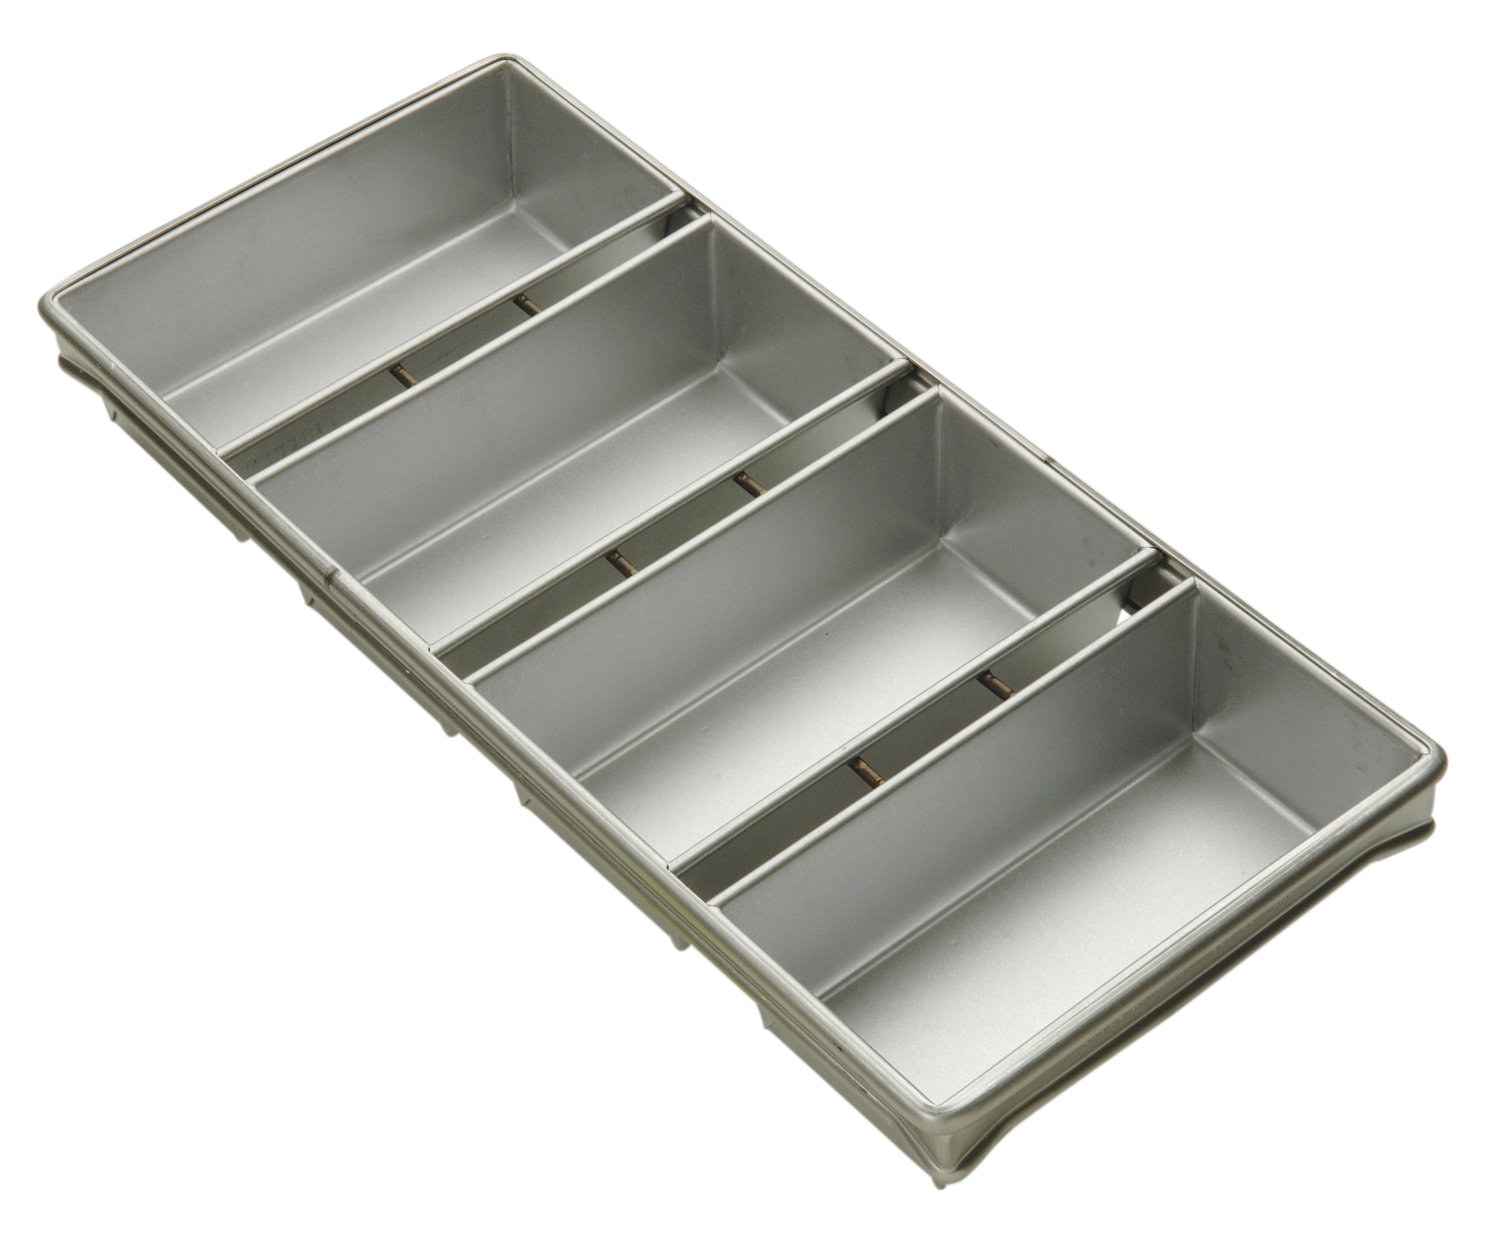 Focus Foodservice Commercial Bakeware 4 Strap 10 by 5-Inch Bread Pan Set by Focus Foodservice